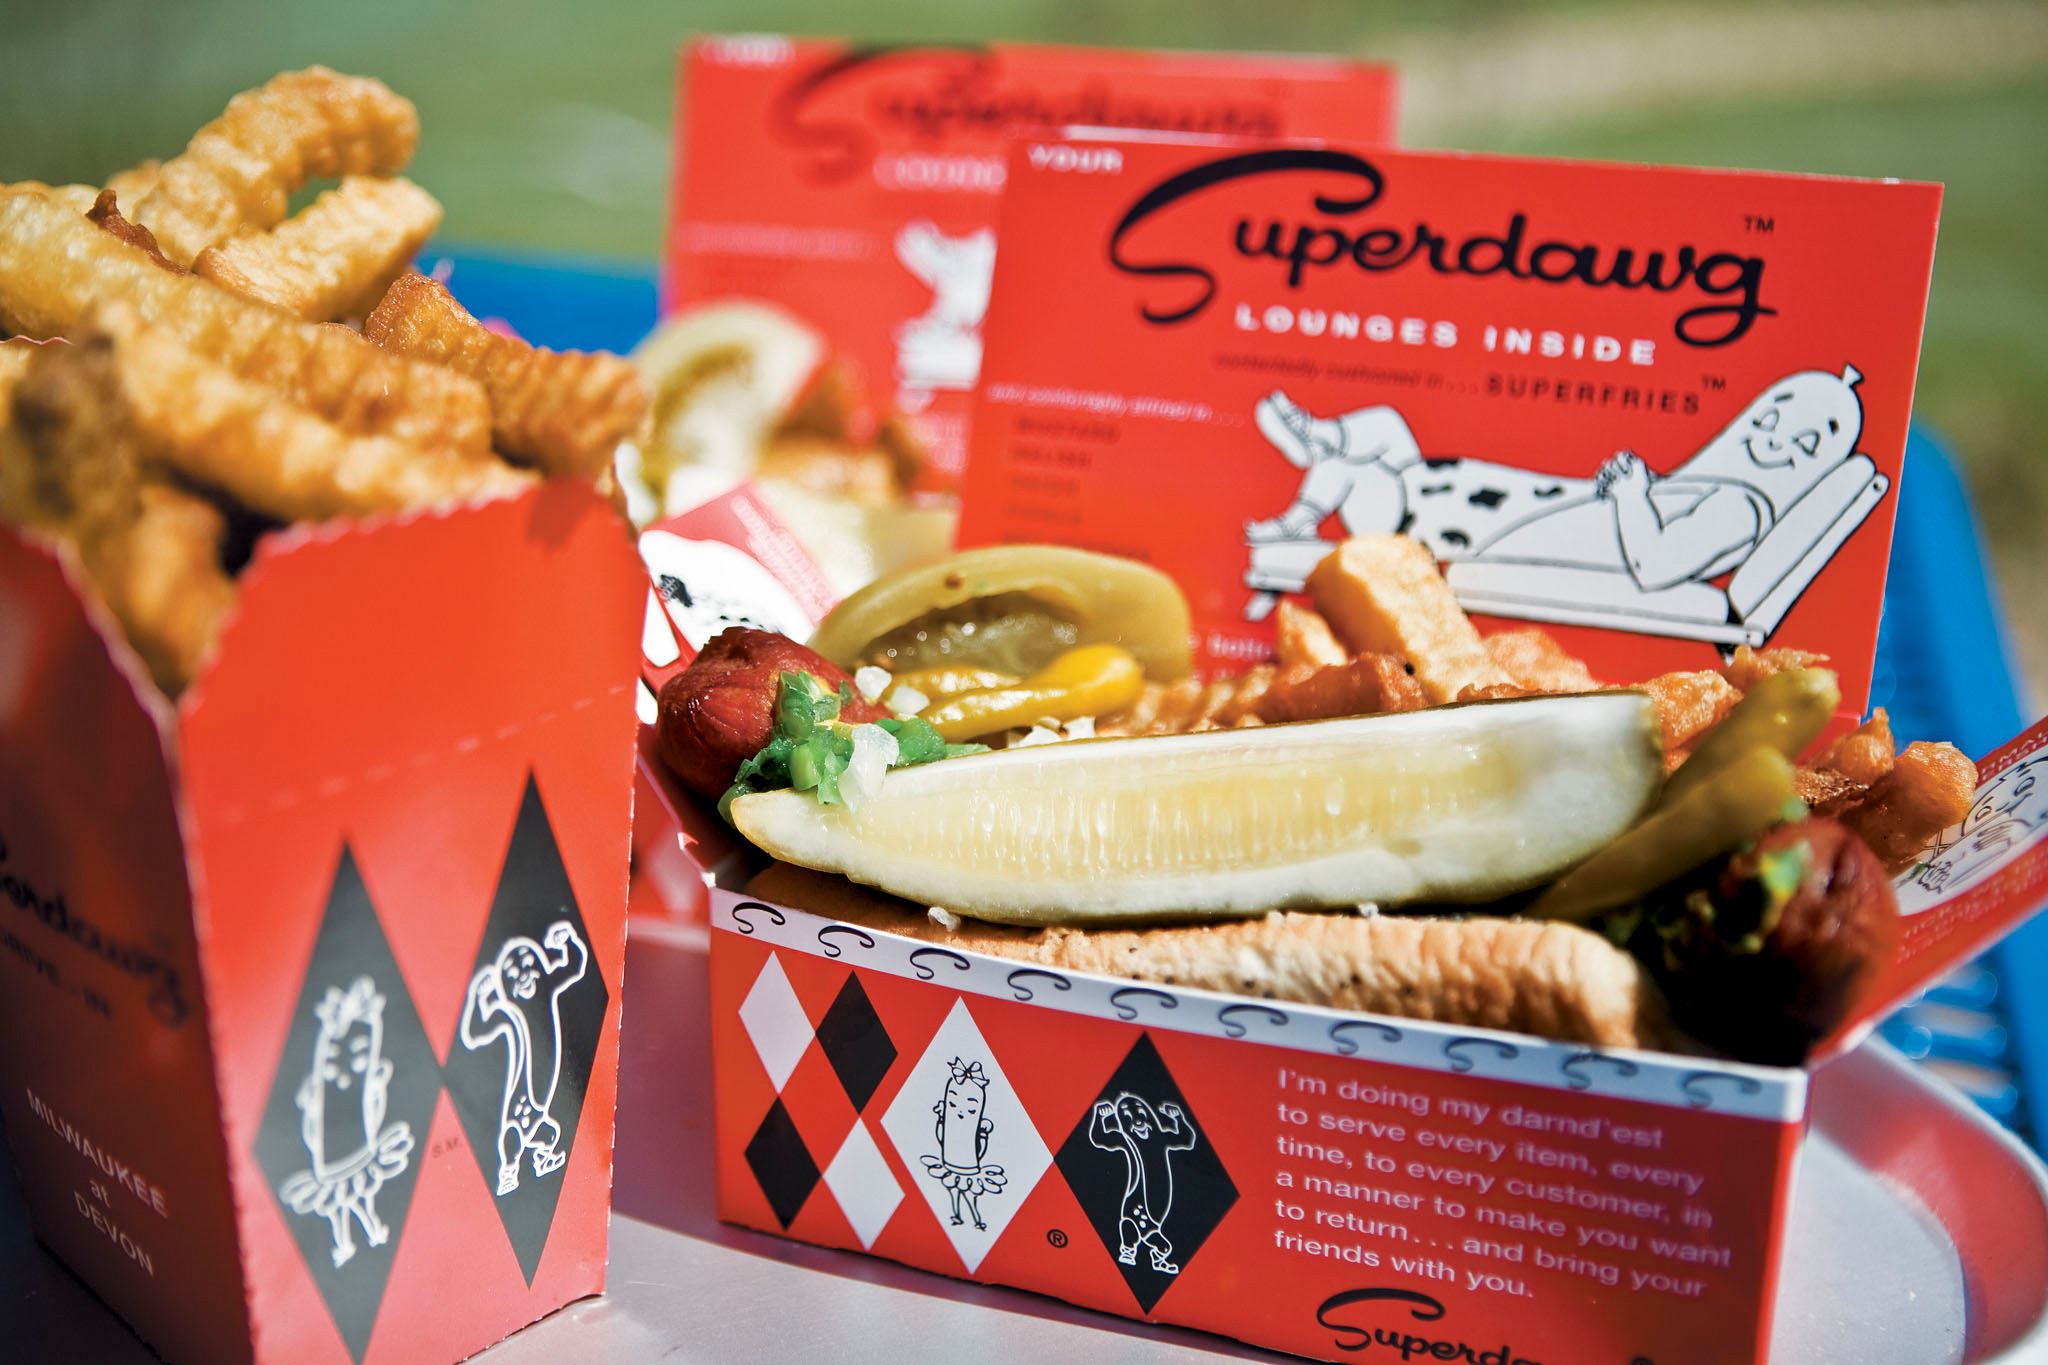 Superdawg1.Venue.jpg